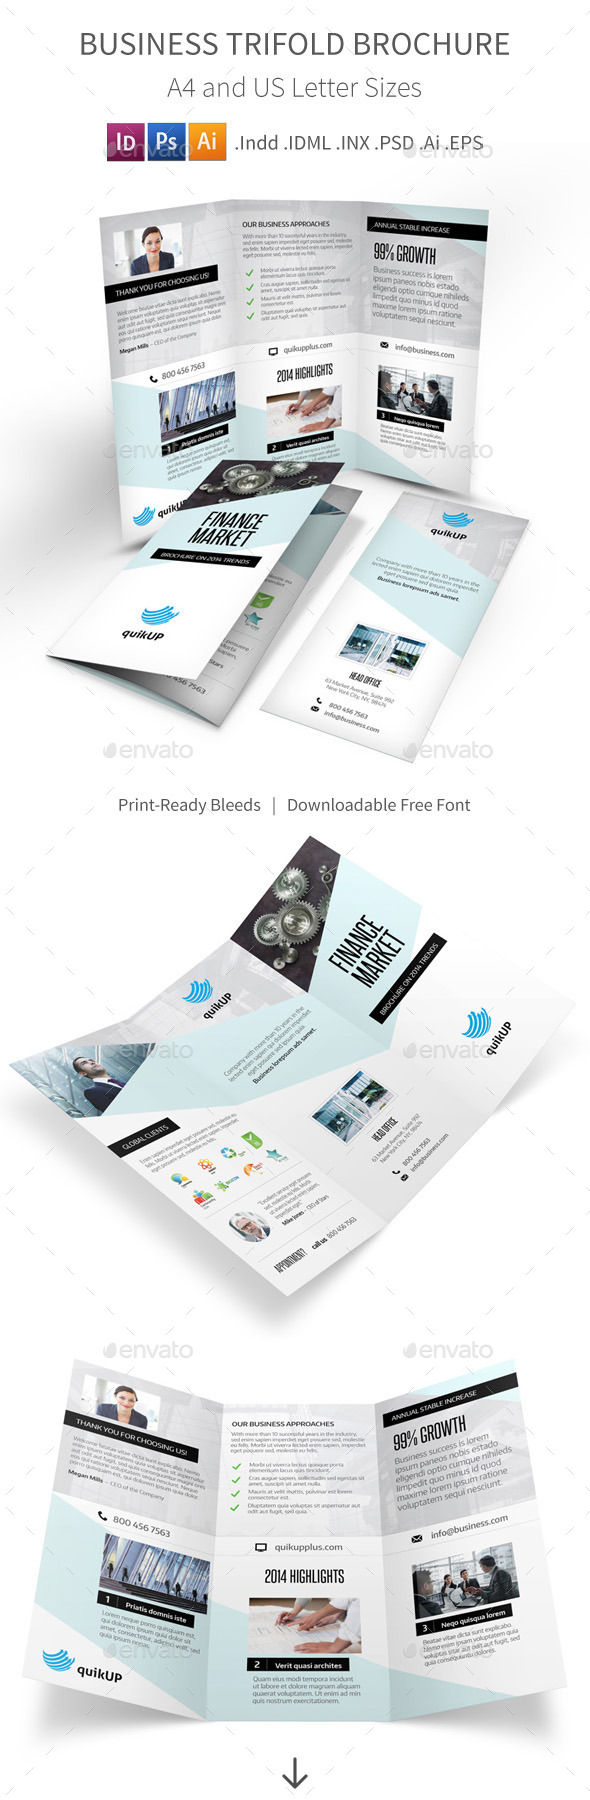 GraphicRiver Business Trifold Brochure 9596369